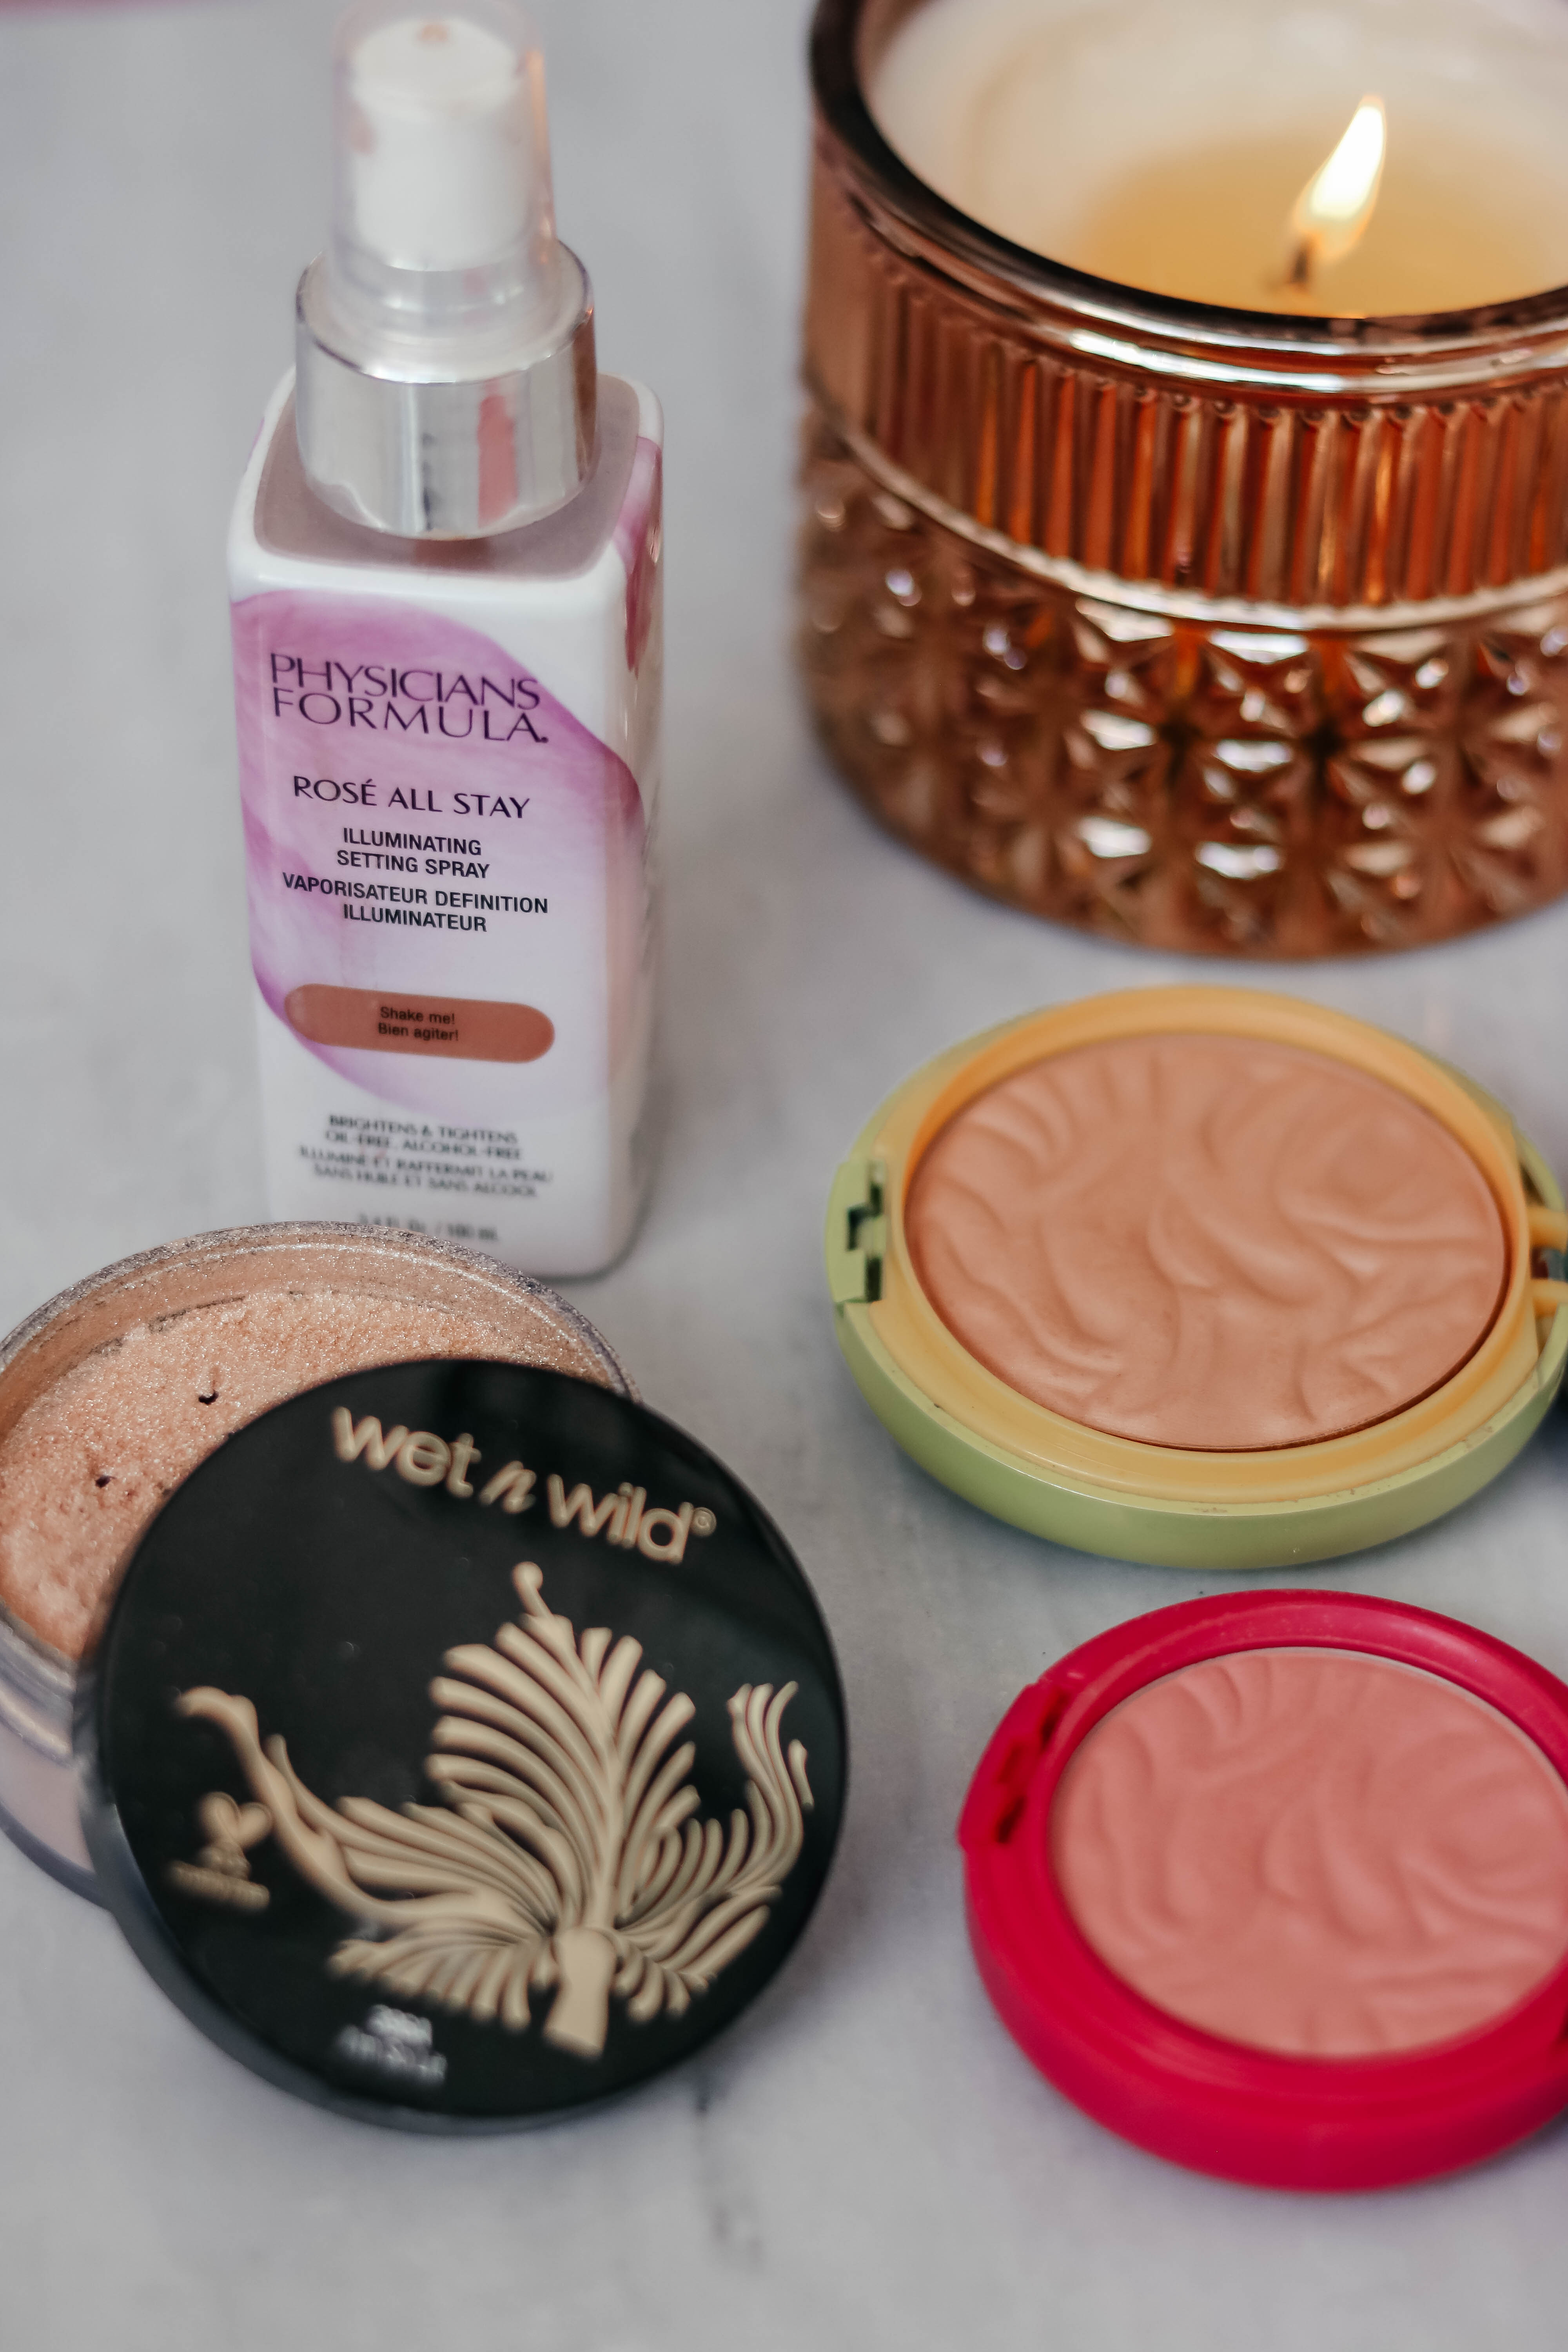 drugstore blush, drugstore contour, drugstore highlight - Wet n' Wild, Physicians Formula products on Coming Up Roses